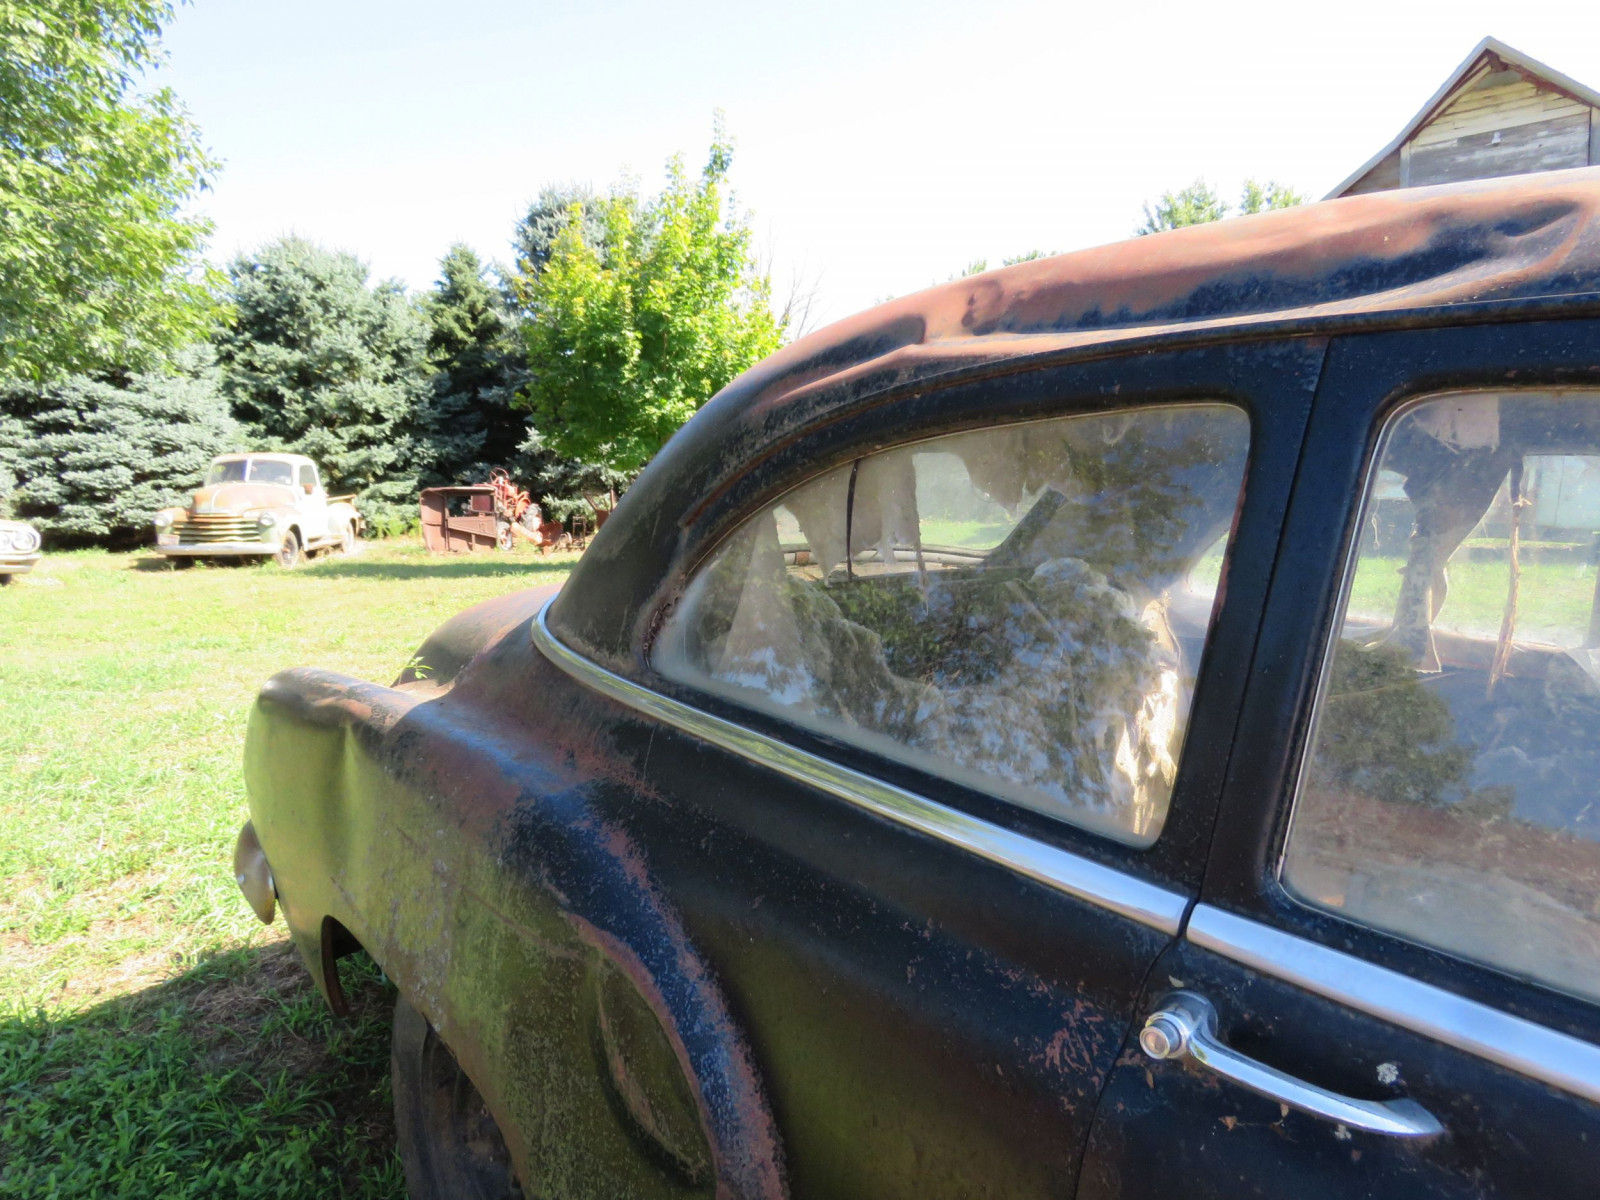 1952 Chevrolet 2dr Sedan for Project or Parts - Image 4